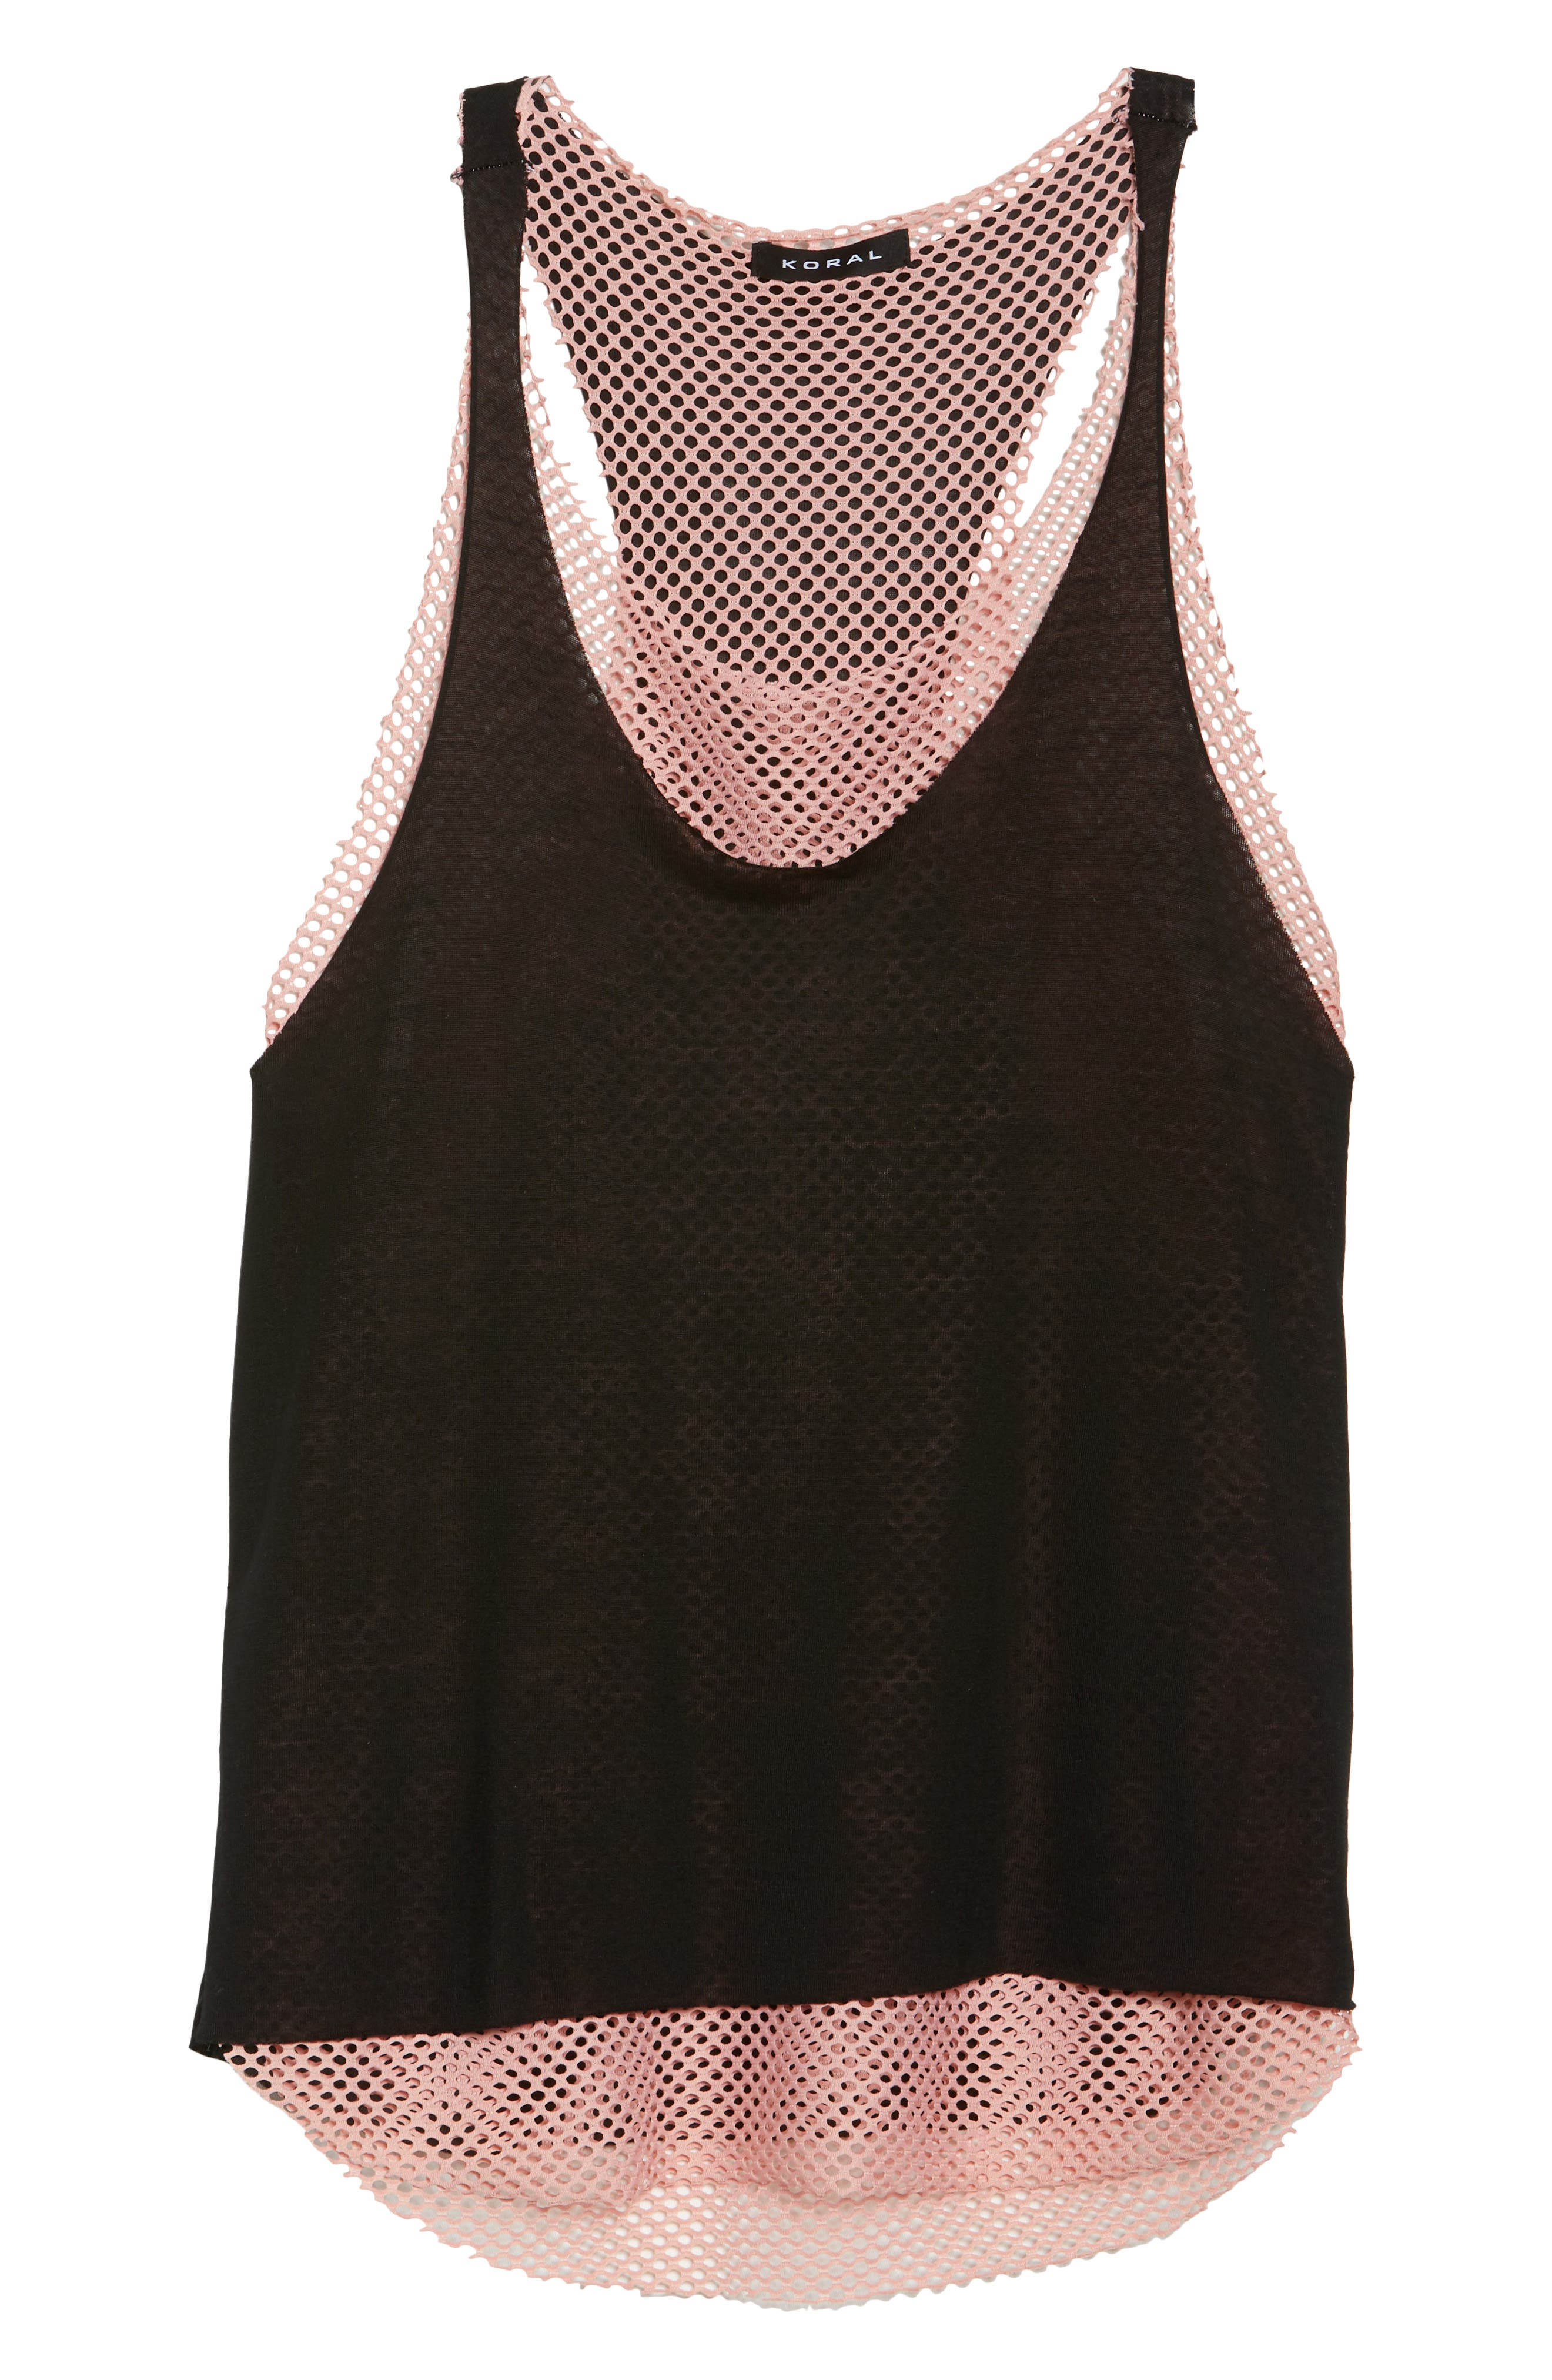 Villa Layered Racerback Tank,                             Alternate thumbnail 7, color,                             001